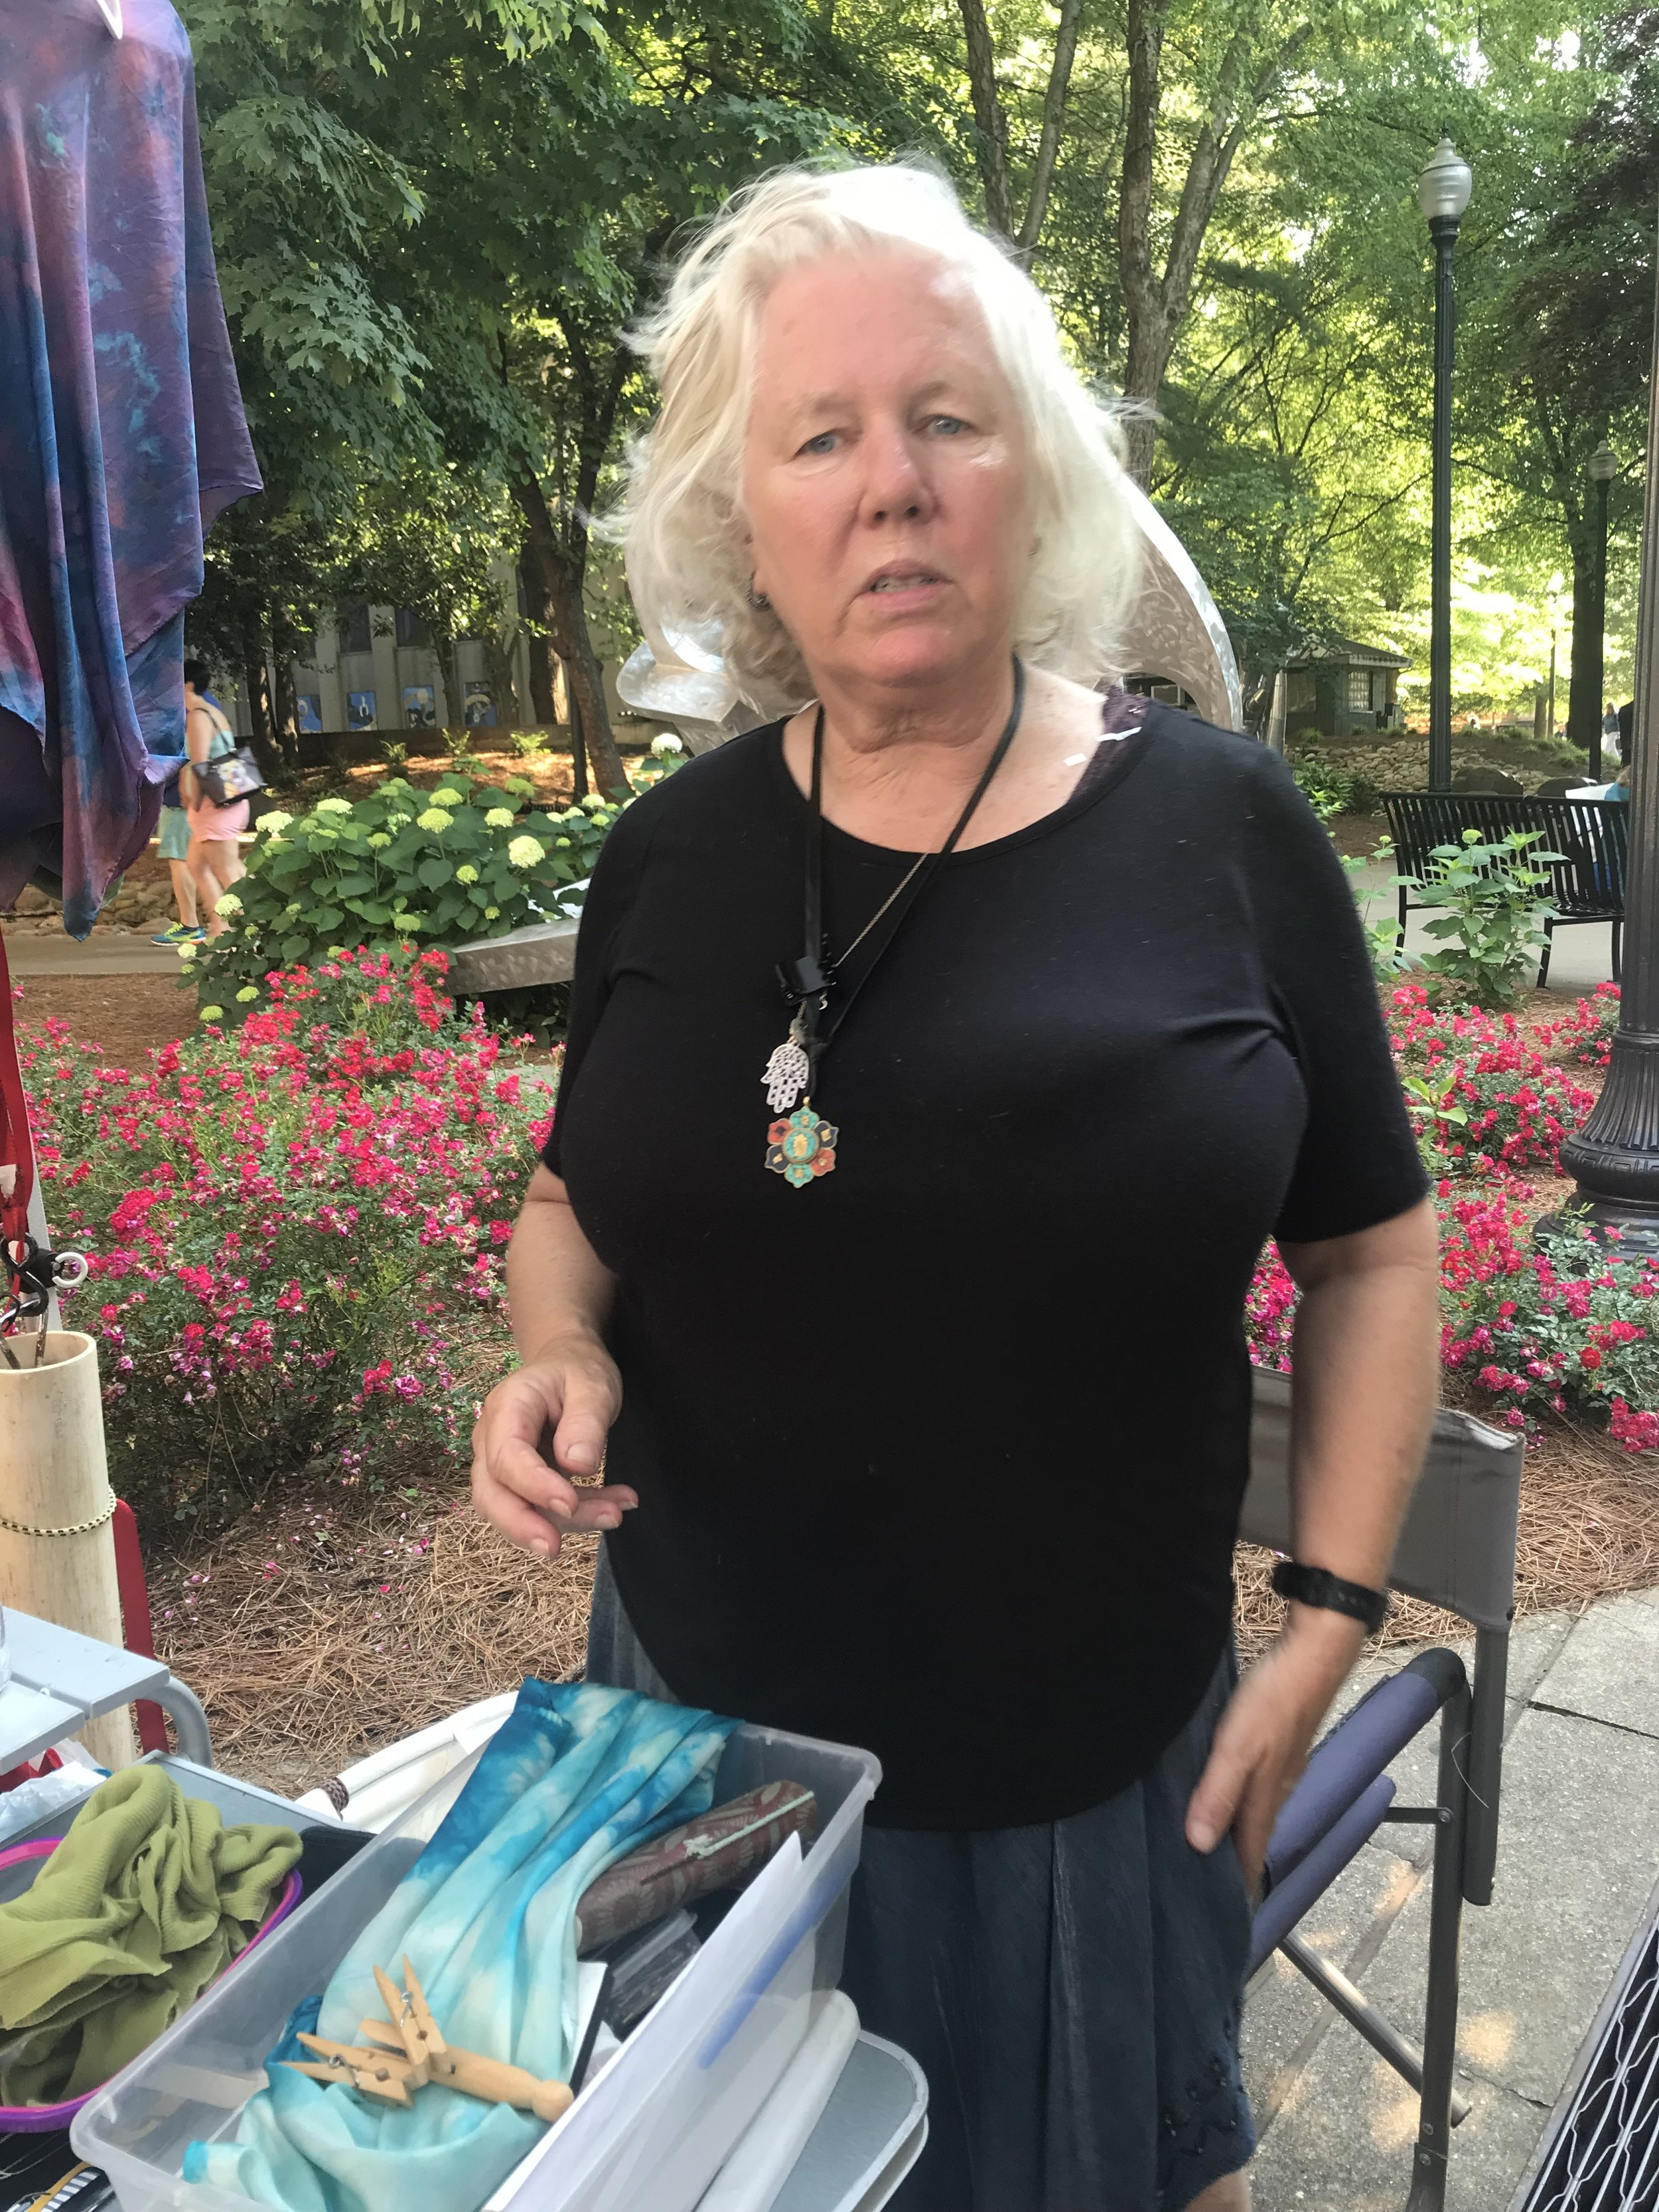 Fiber artist Nancy Roberson pauses at her RichRobes booth. Nancy sells handwoven wearables, shibori silks and tapestries